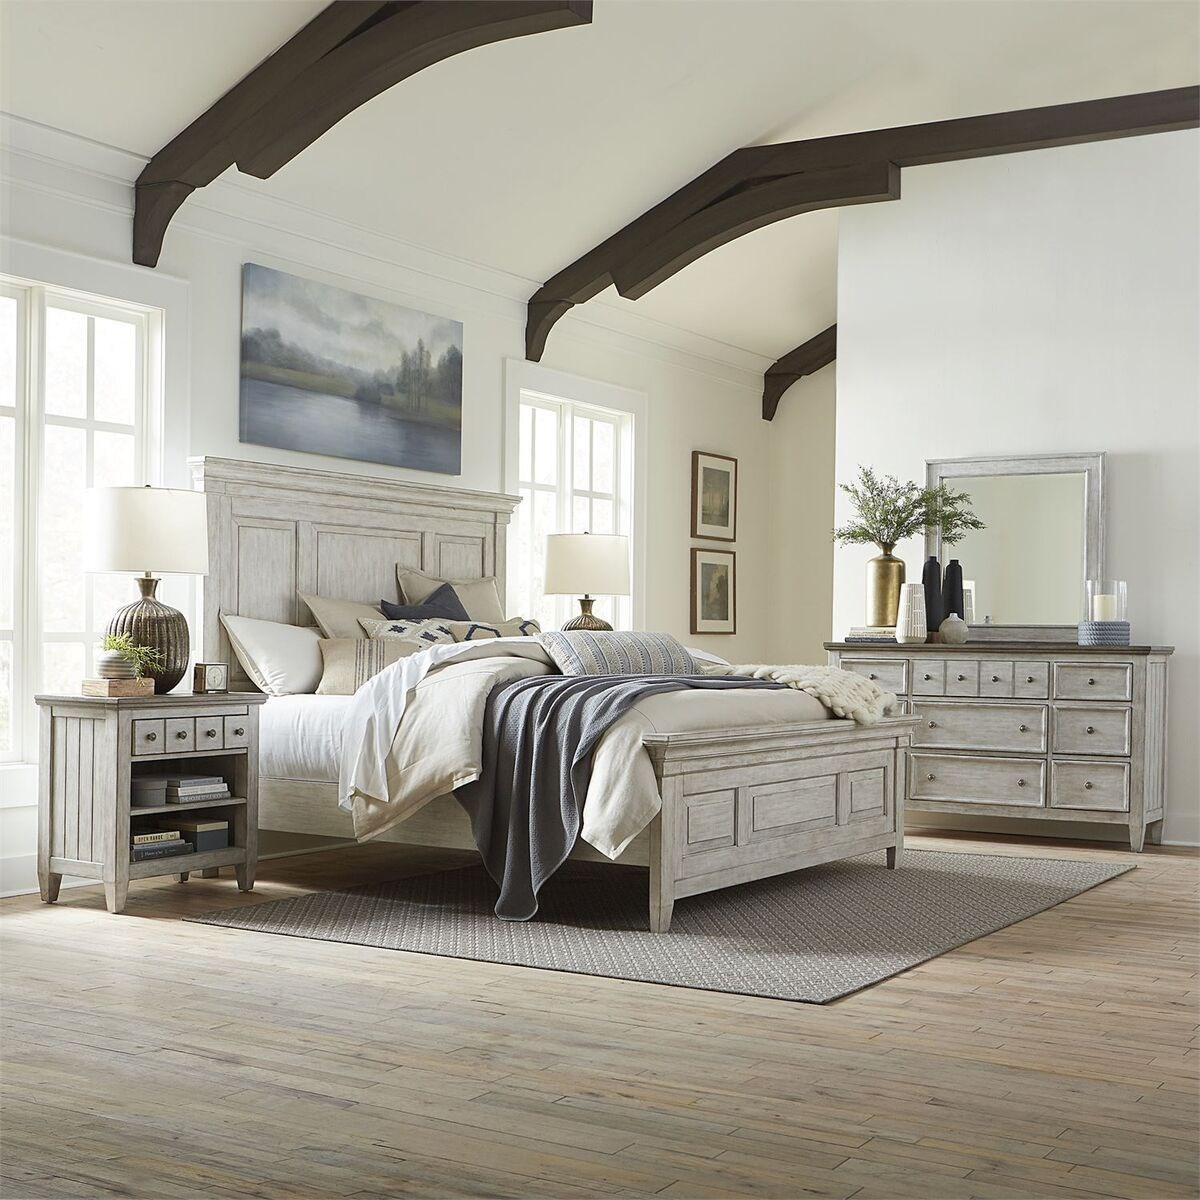 Heartland King Bedroom Group by Liberty Furniture at Johnny Janosik